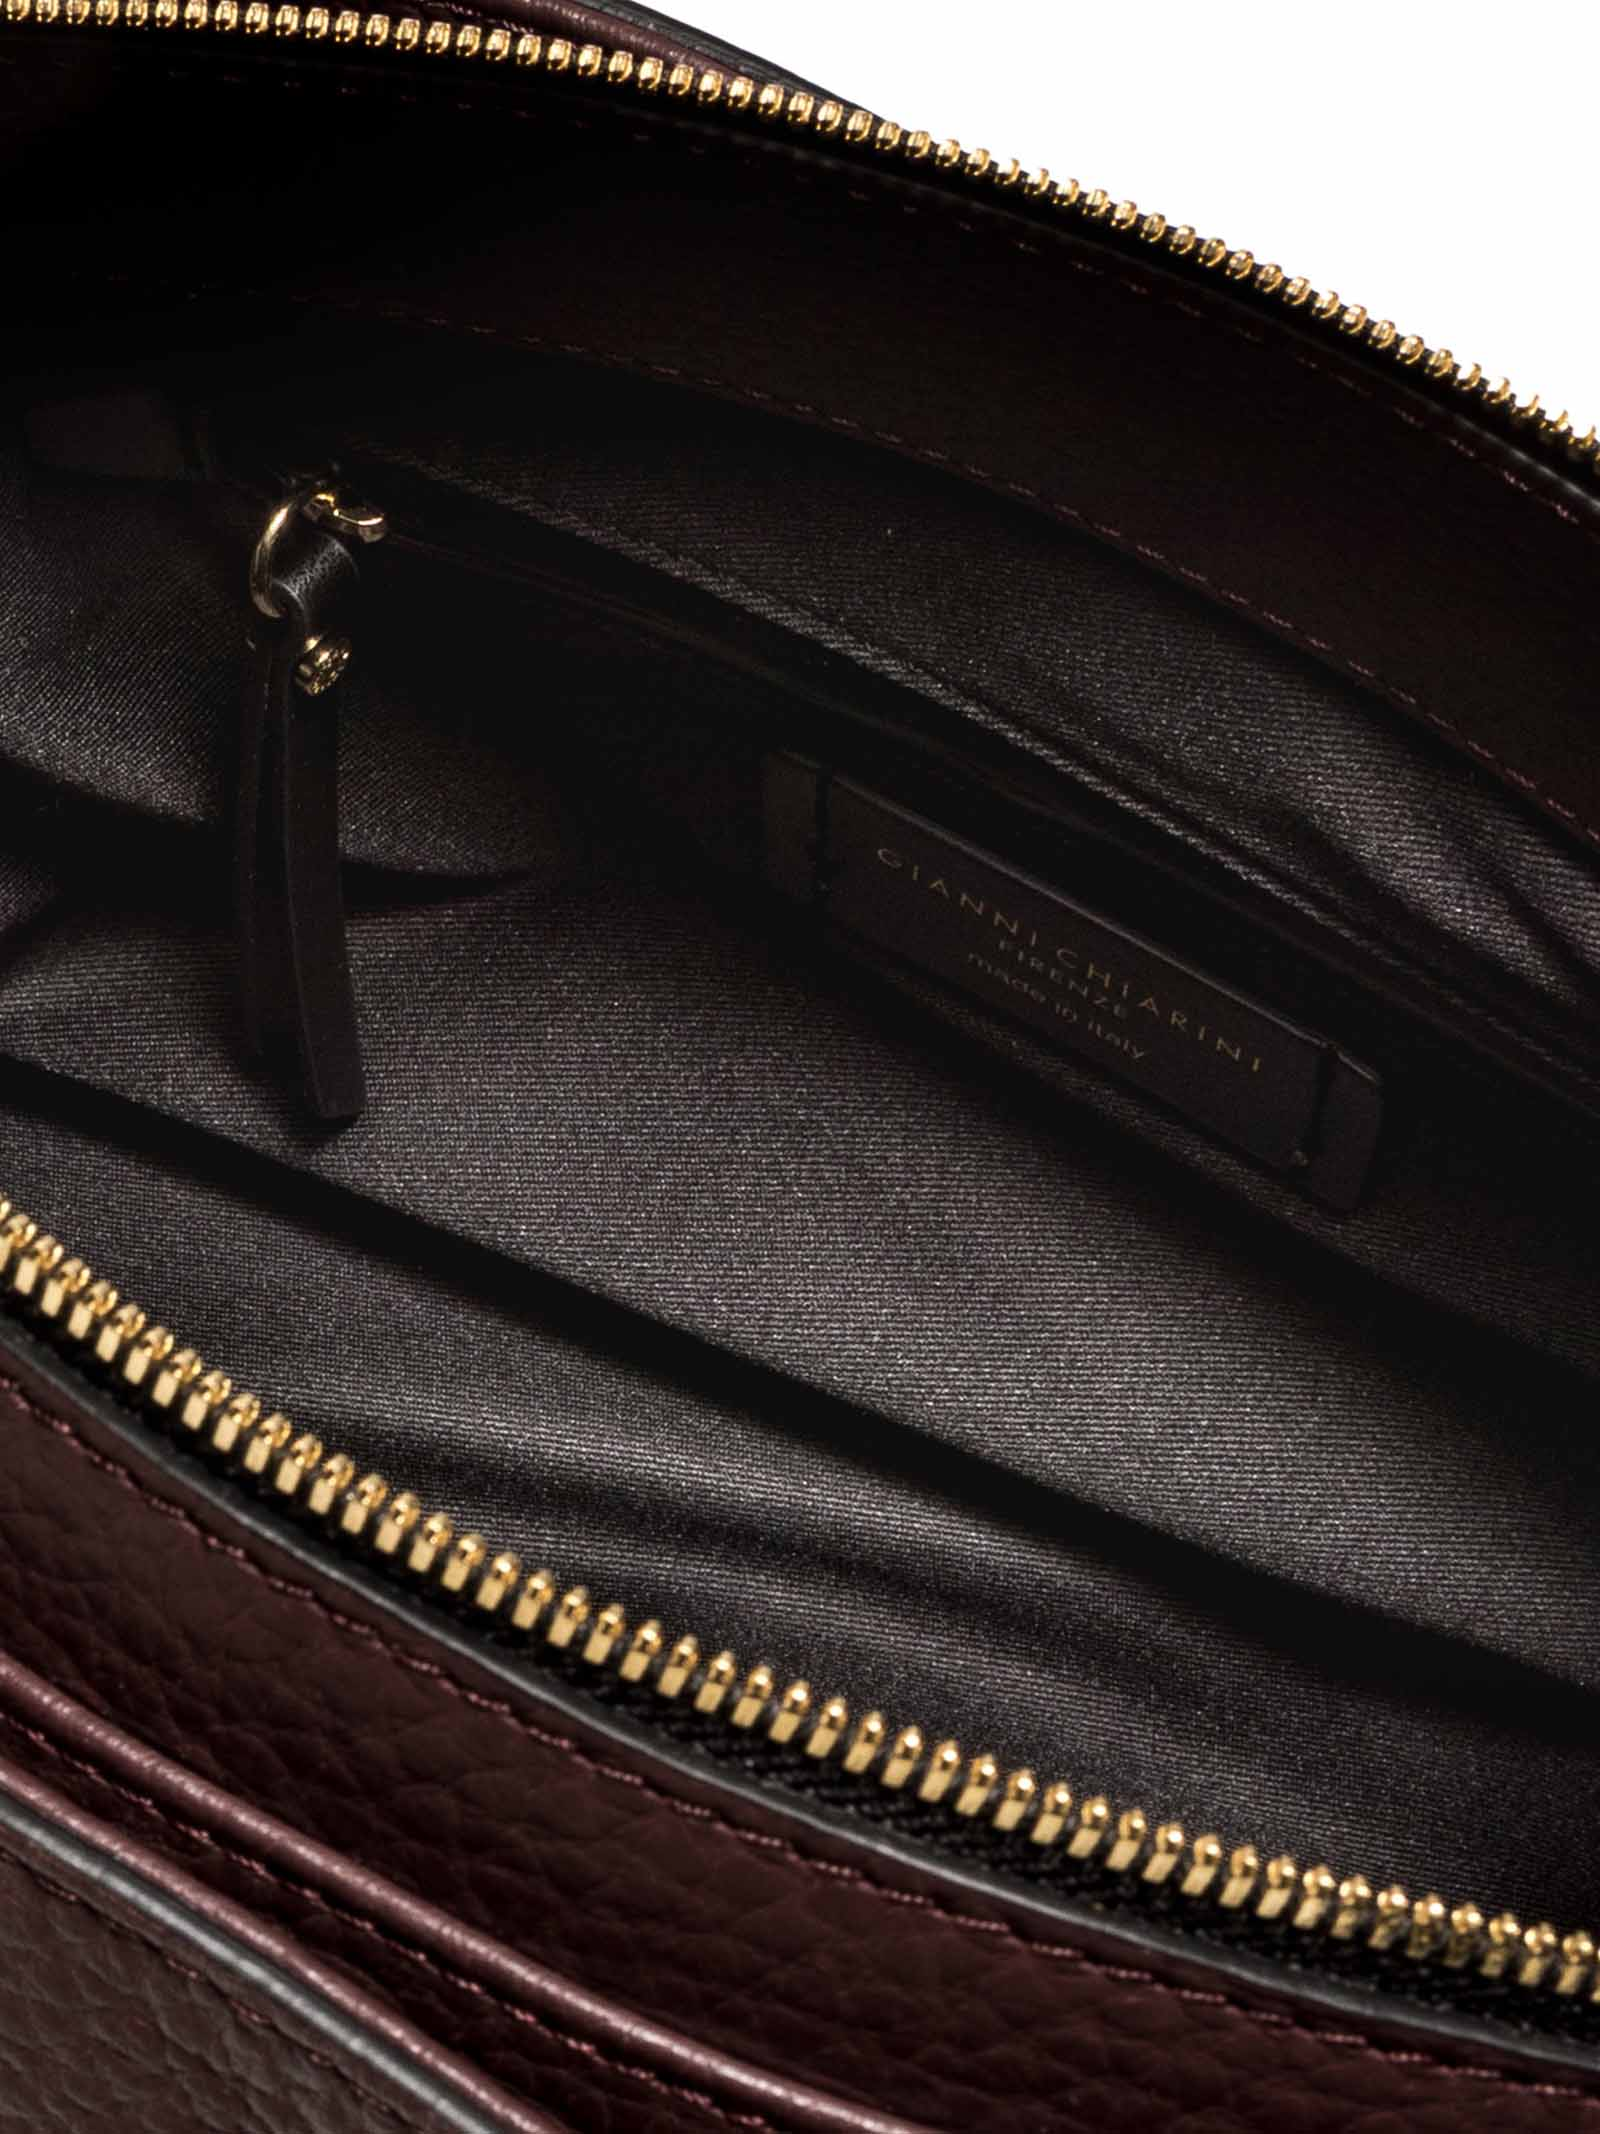 Women's Sandrine Shoulder Bag in Bordeaux Leather with Long Double Handles and Double Cursor Zip Closure Gianni Chiarini | Bags and backpacks | BS87876649